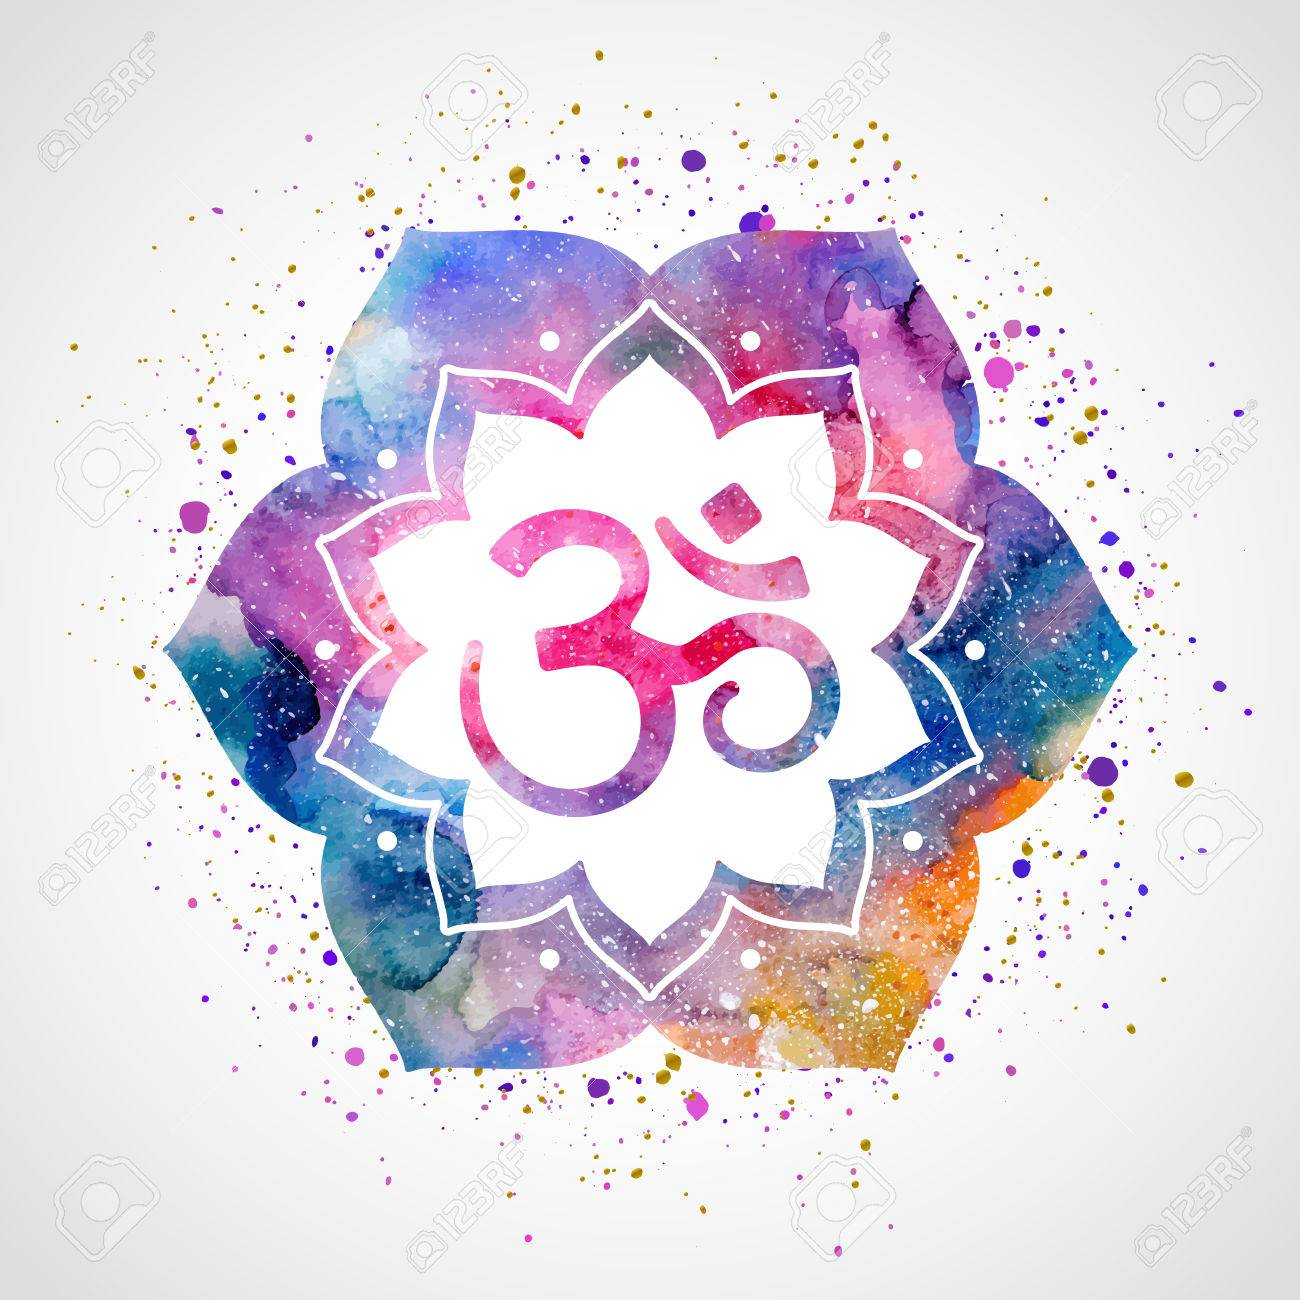 Om sign in lotus flower rainbow watercolor texture and splash om sign in lotus flower rainbow watercolor texture and splash vector isolated spiritual mightylinksfo